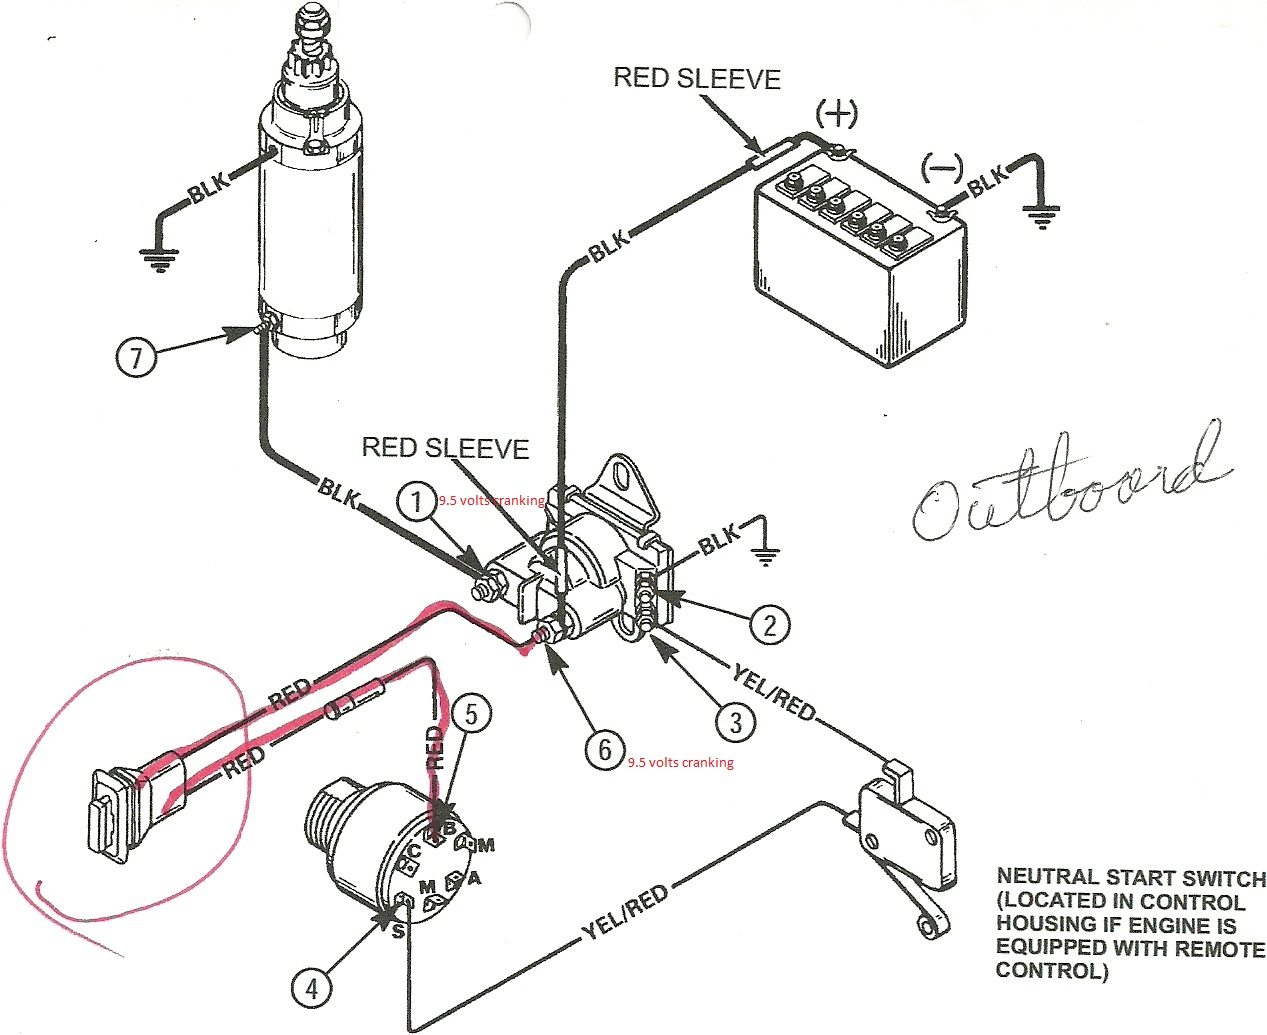 Polaris Starter Solenoid Wiring Diagram 39 Images Volvo Penta 2012 07 21 184114 Outbrd Strt Circuit For Atv Relay Readingrat Net